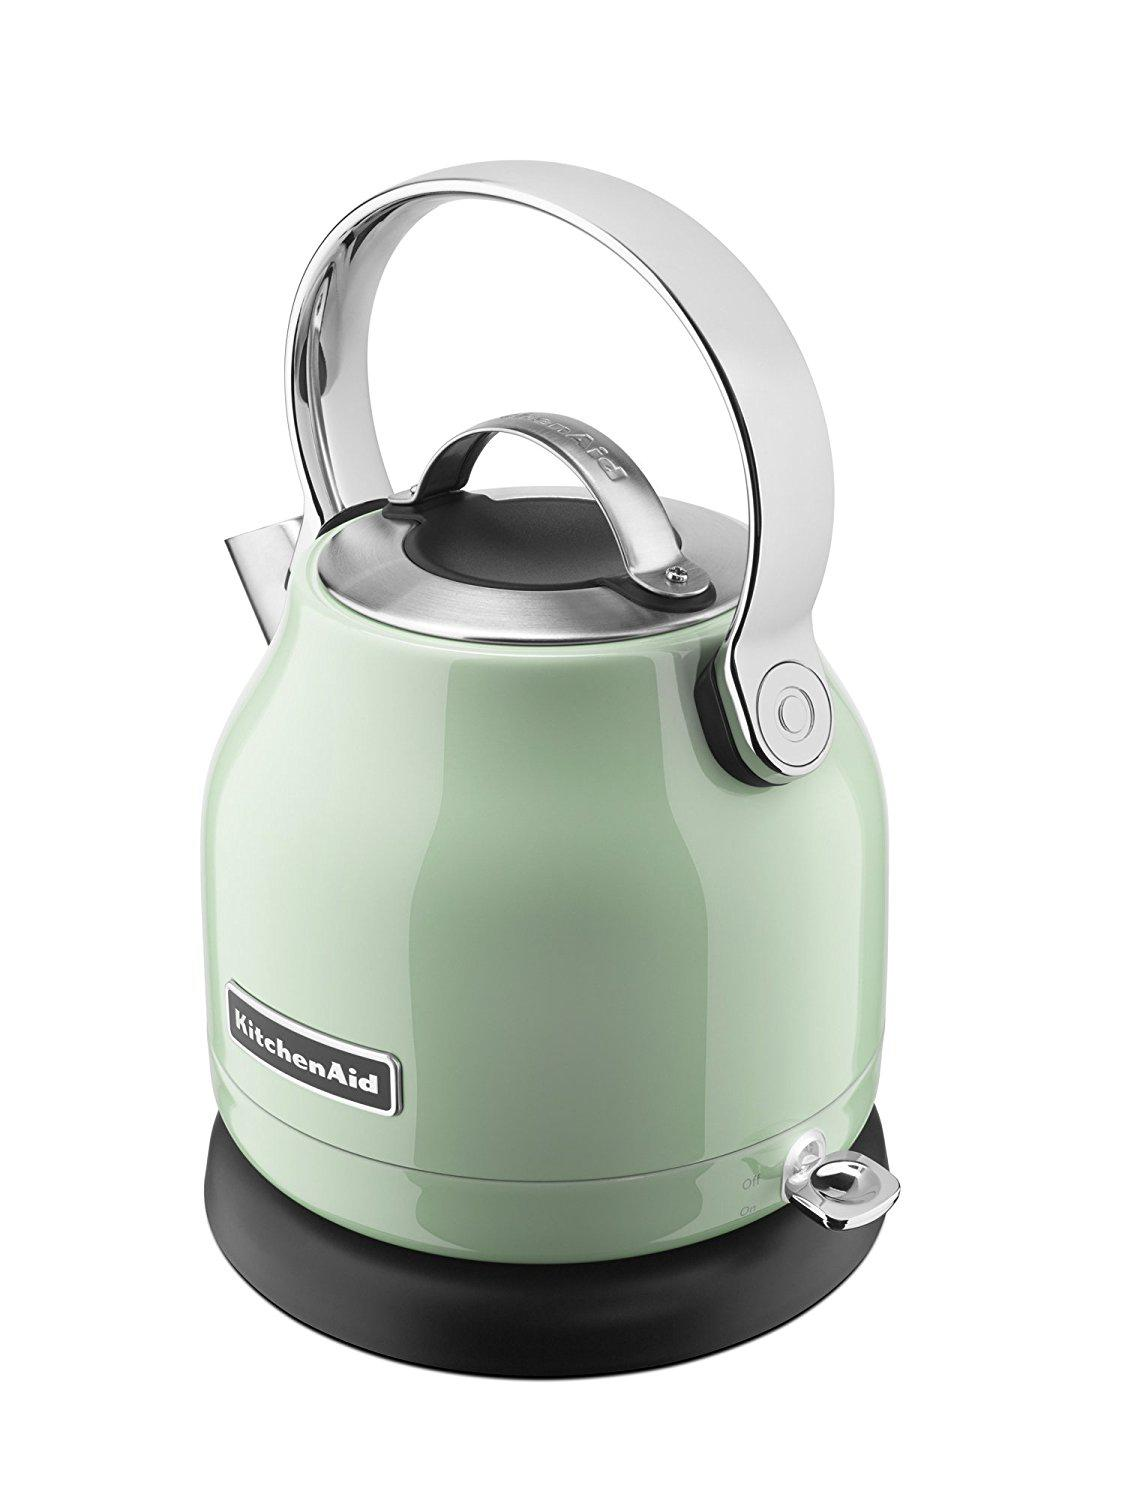 Kitchenaid 1 25 Liter Electric Kettle Pistachio Best Offer